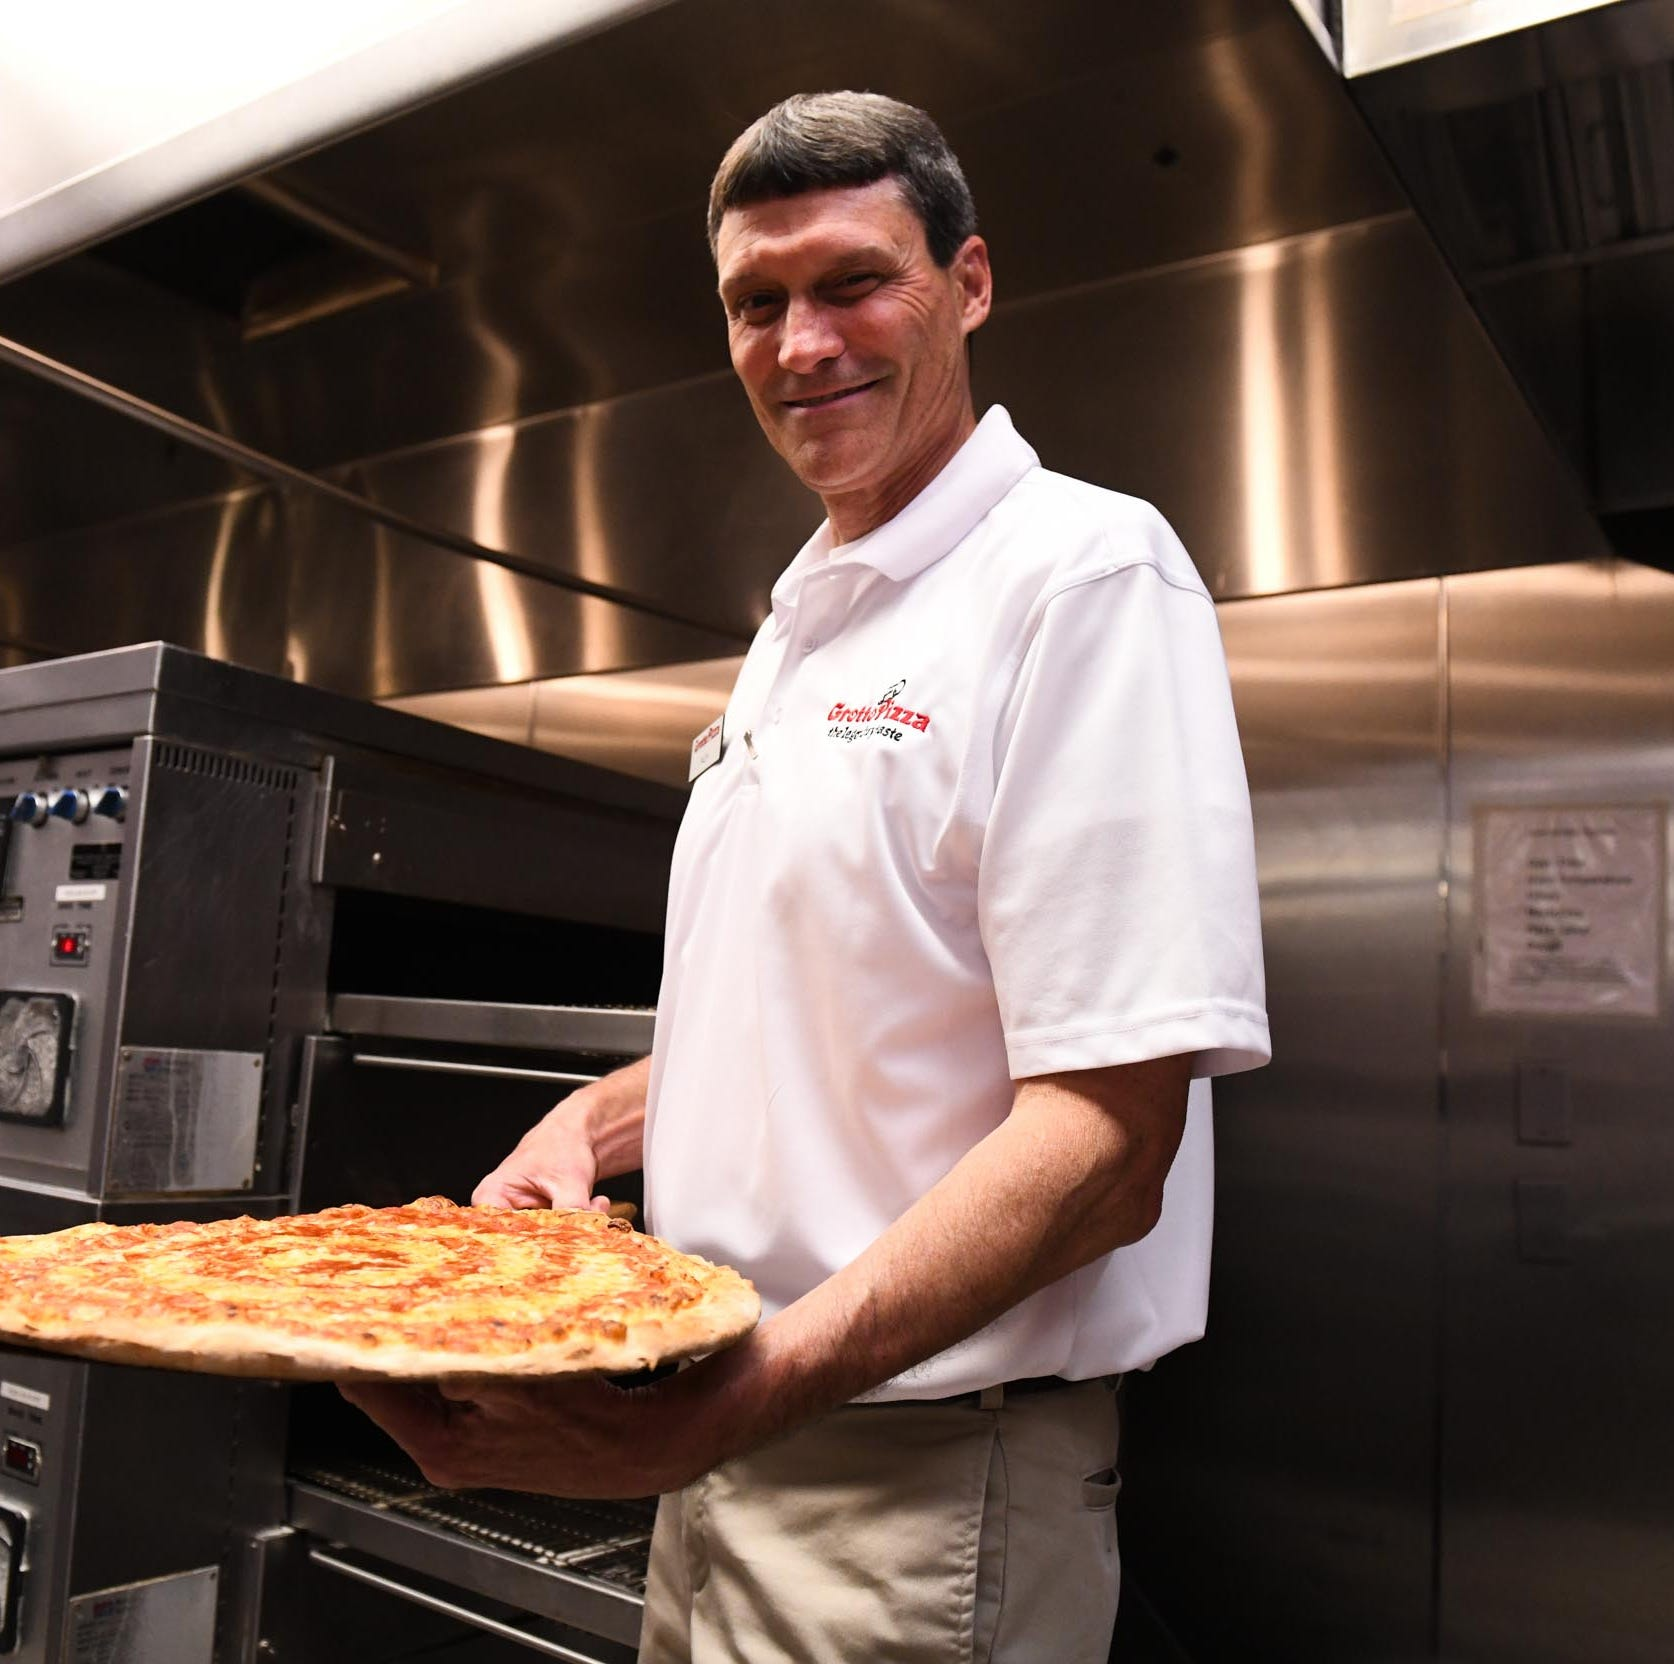 Grotto Pizza's 60th anniversary is coming up. Meet the employees serving for 20+ years